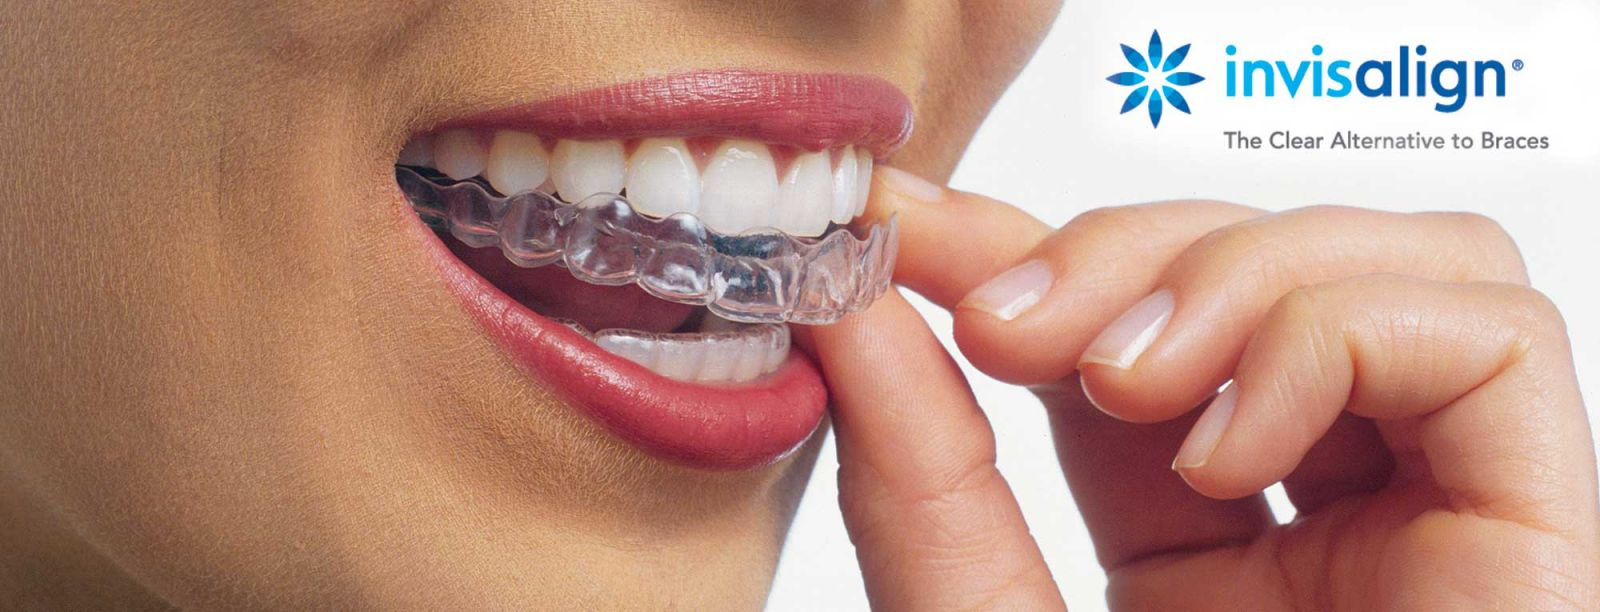 Invisalign Braces in Independence, MO